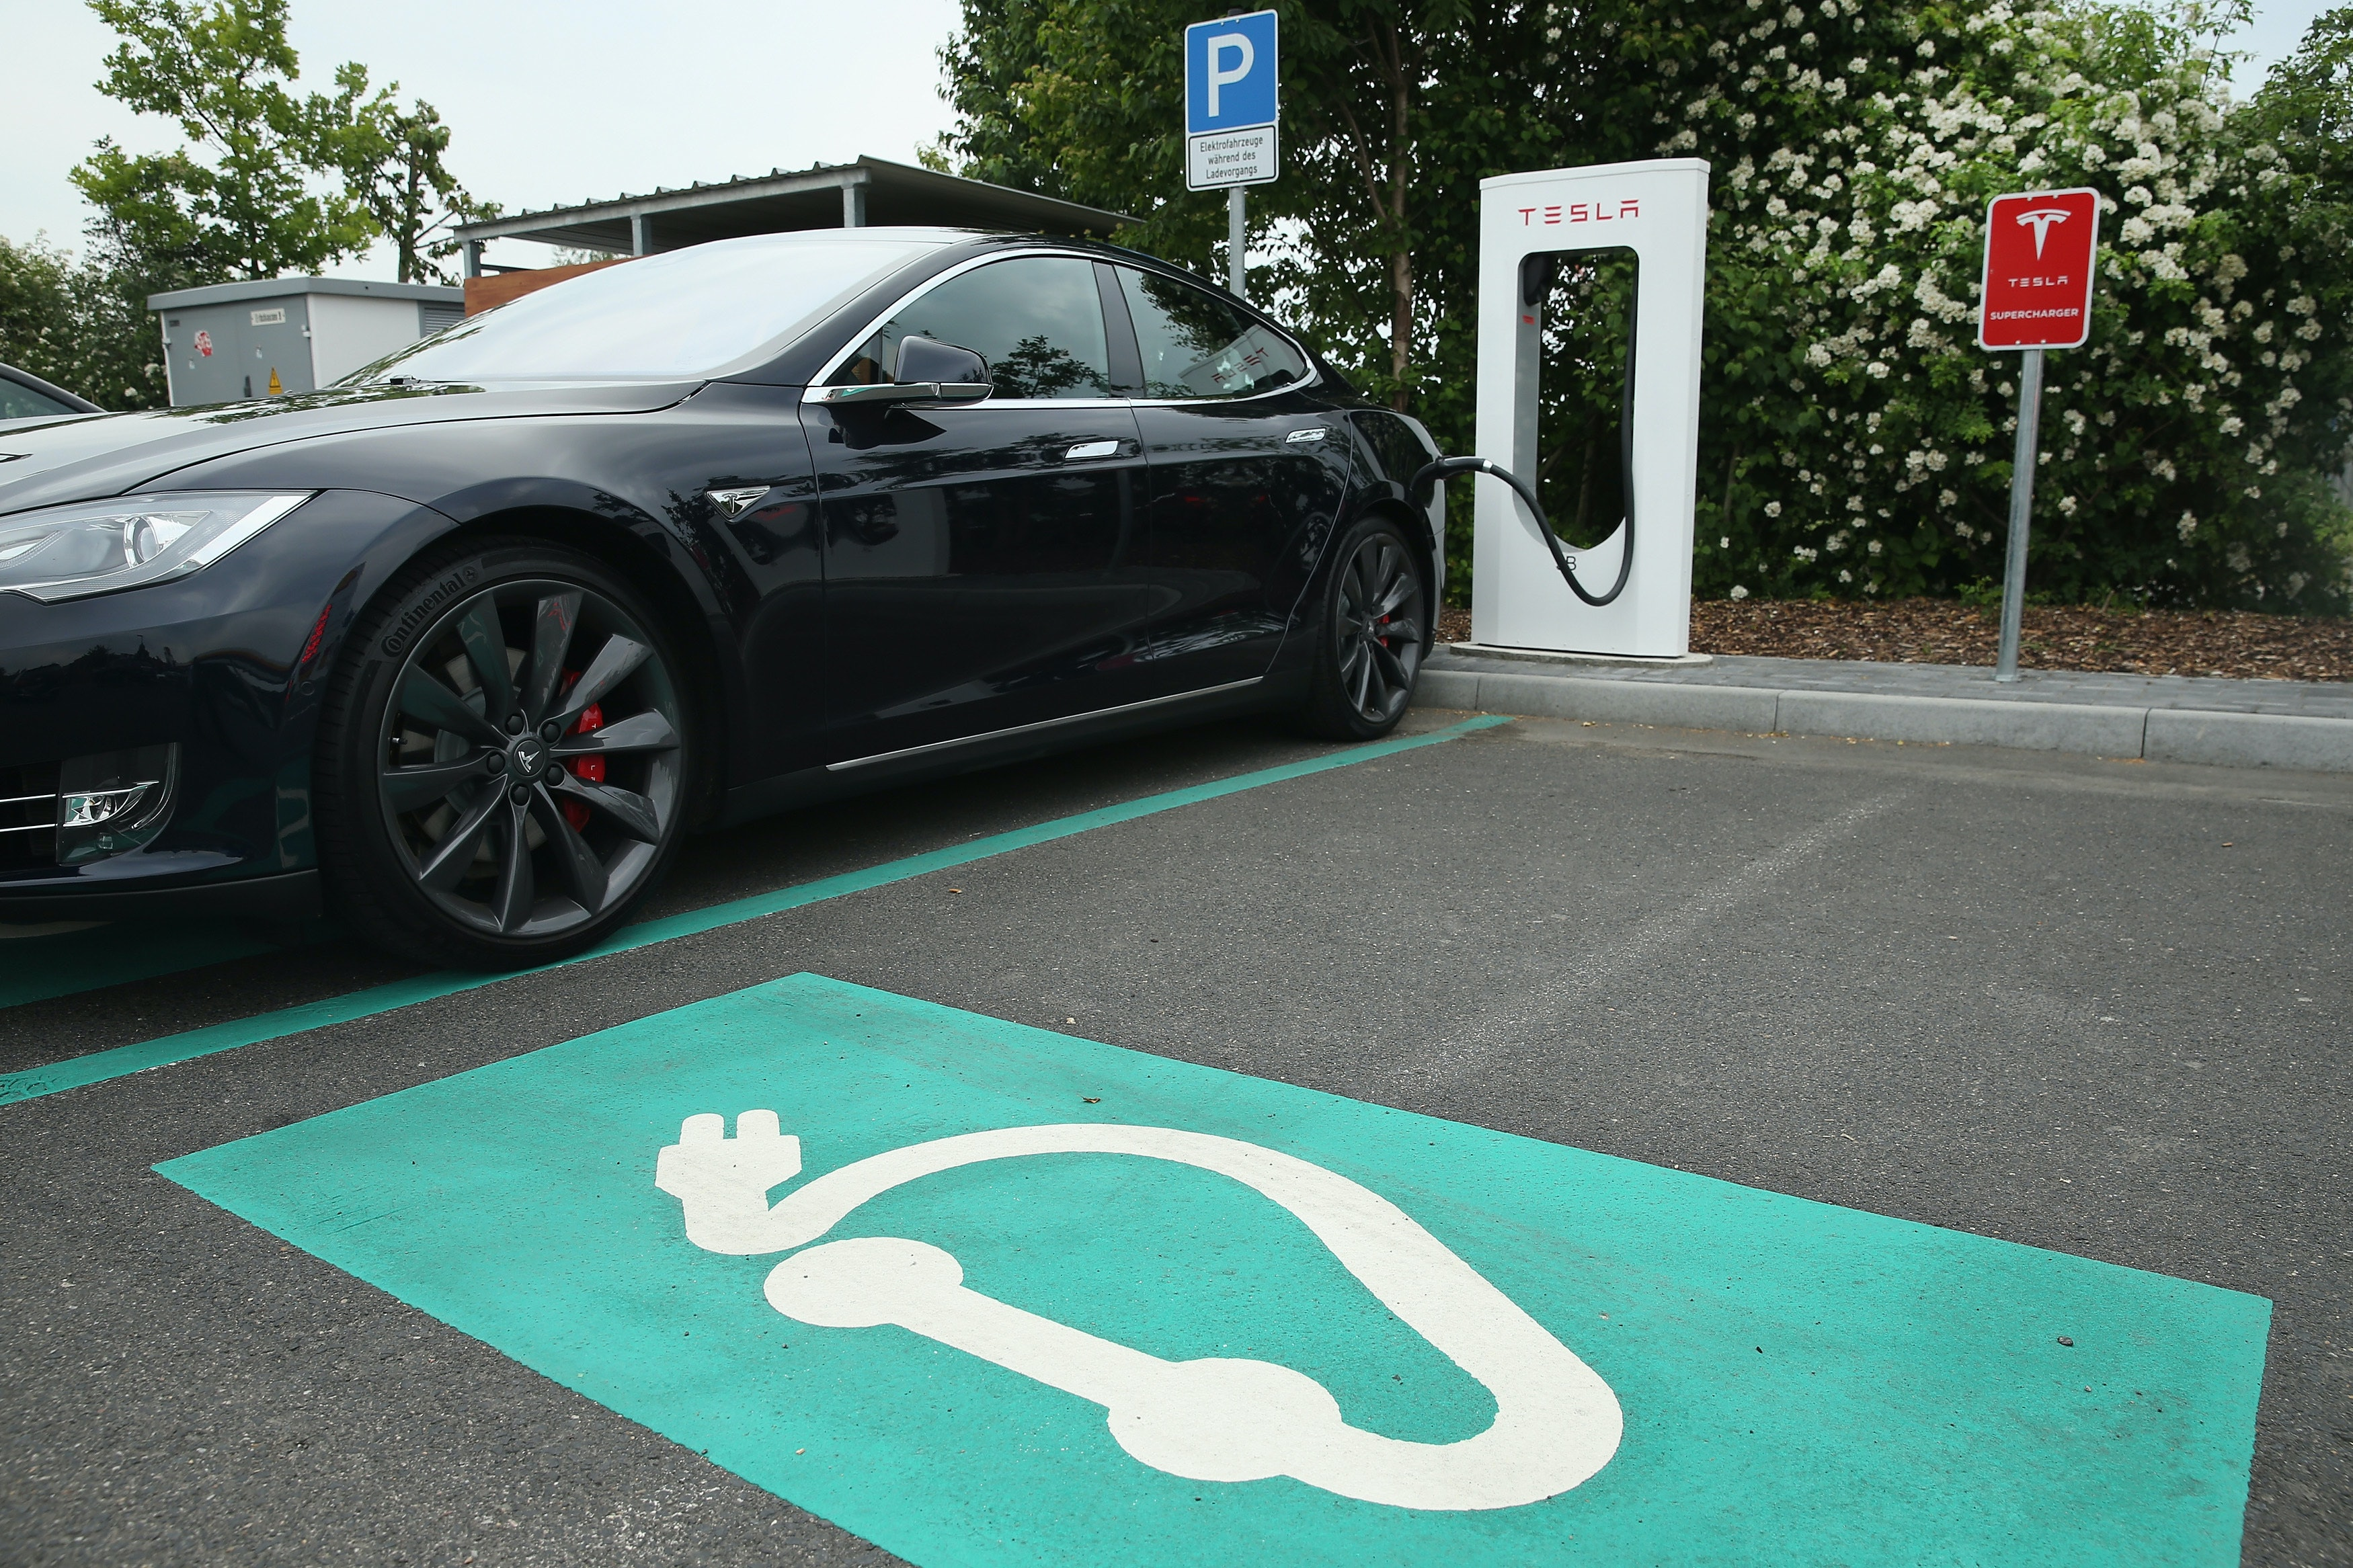 RIEDEN, GERMANY - JUNE 11:  A Tesla electric-powered sedan stands at a Tesla charging staiton at a highway reststop along the A7 highway on June 11, 2015 near Rieden, Germany. Tesla has introduced a limited network of charging stations along the German highway grid in an effort to raise the viability for consumers to use the cars for longer journeys.  (Photo by Sean Gallup/Getty Images)